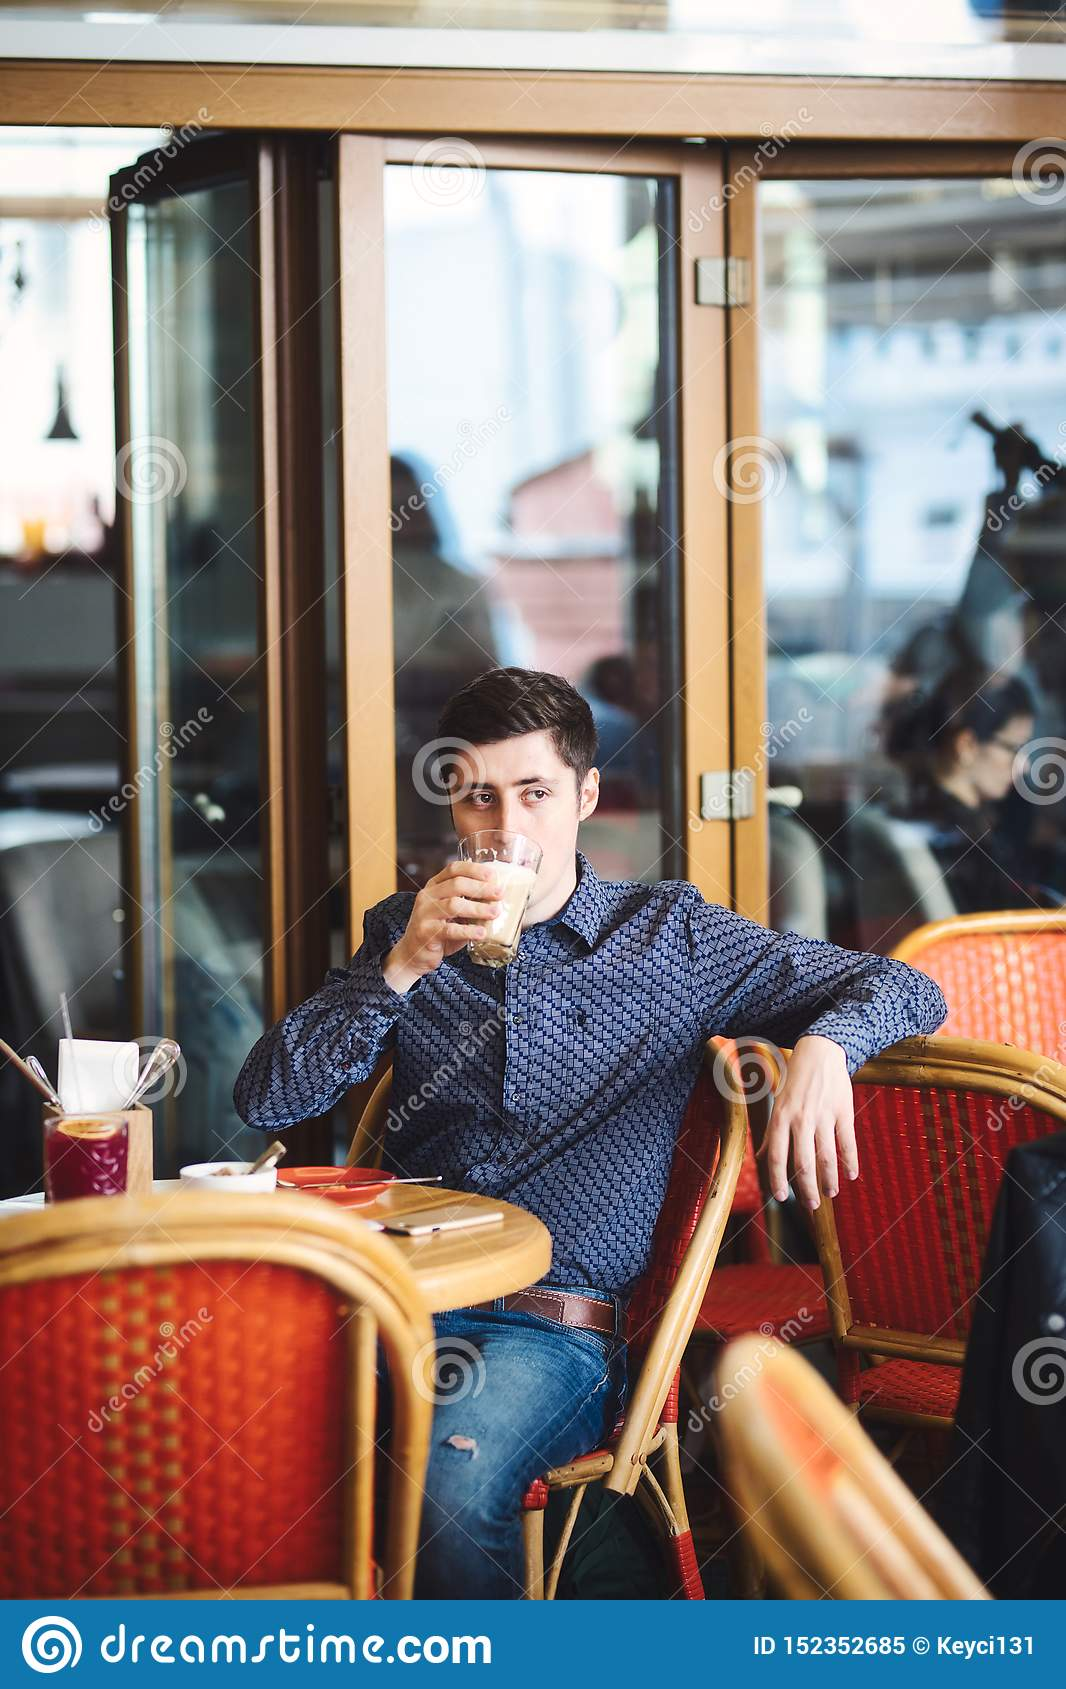 Man drinking large latte at a cafe table